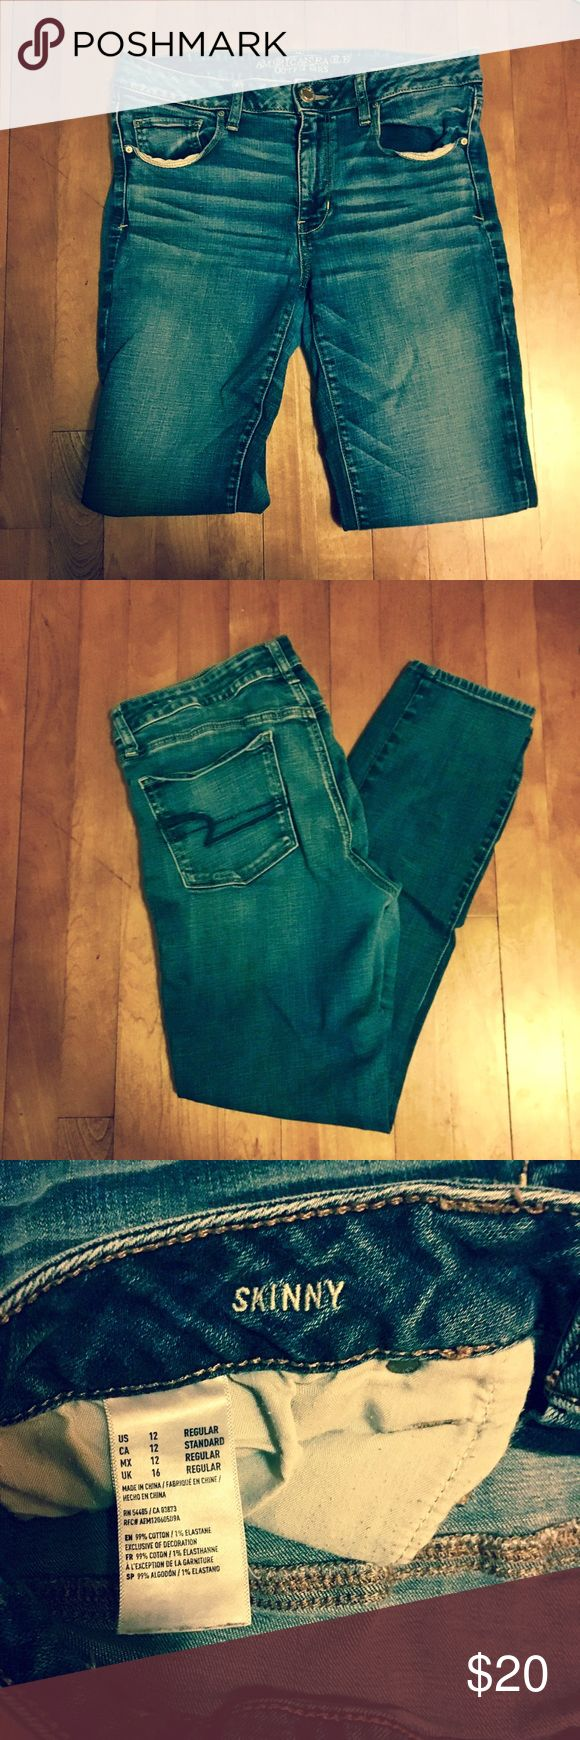 AE Distressed Skinny Jeans EUC Denim that I have sadly outgrown//Worn many times, but these jeans still have SO MUCH life in them// Lightweight and stretchy material! American Eagle Outfitters Jeans Skinny